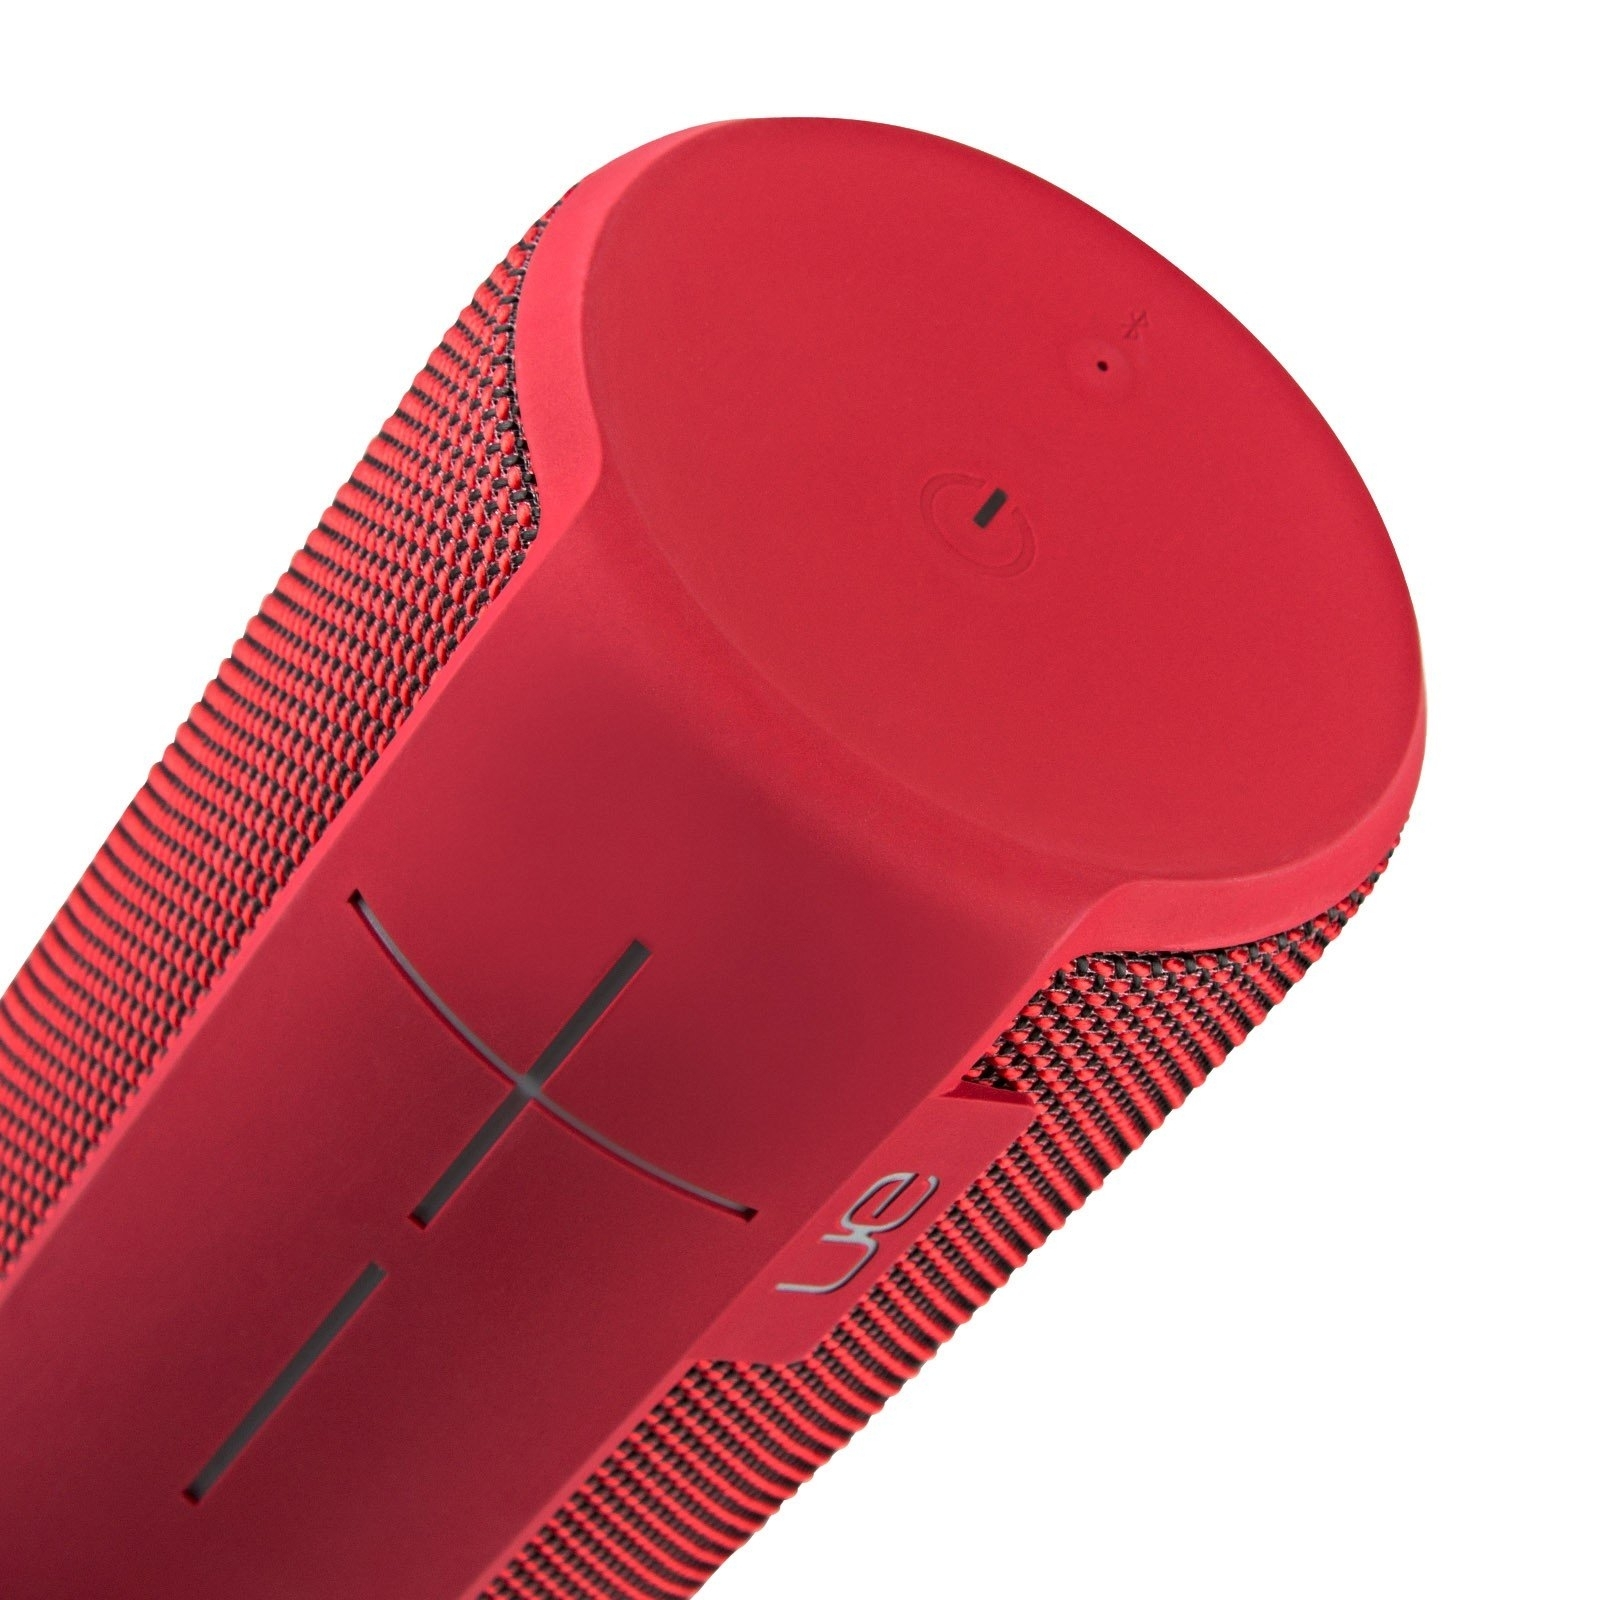 Portable Bluetooth Speaker Ultimate Ears Megaboom